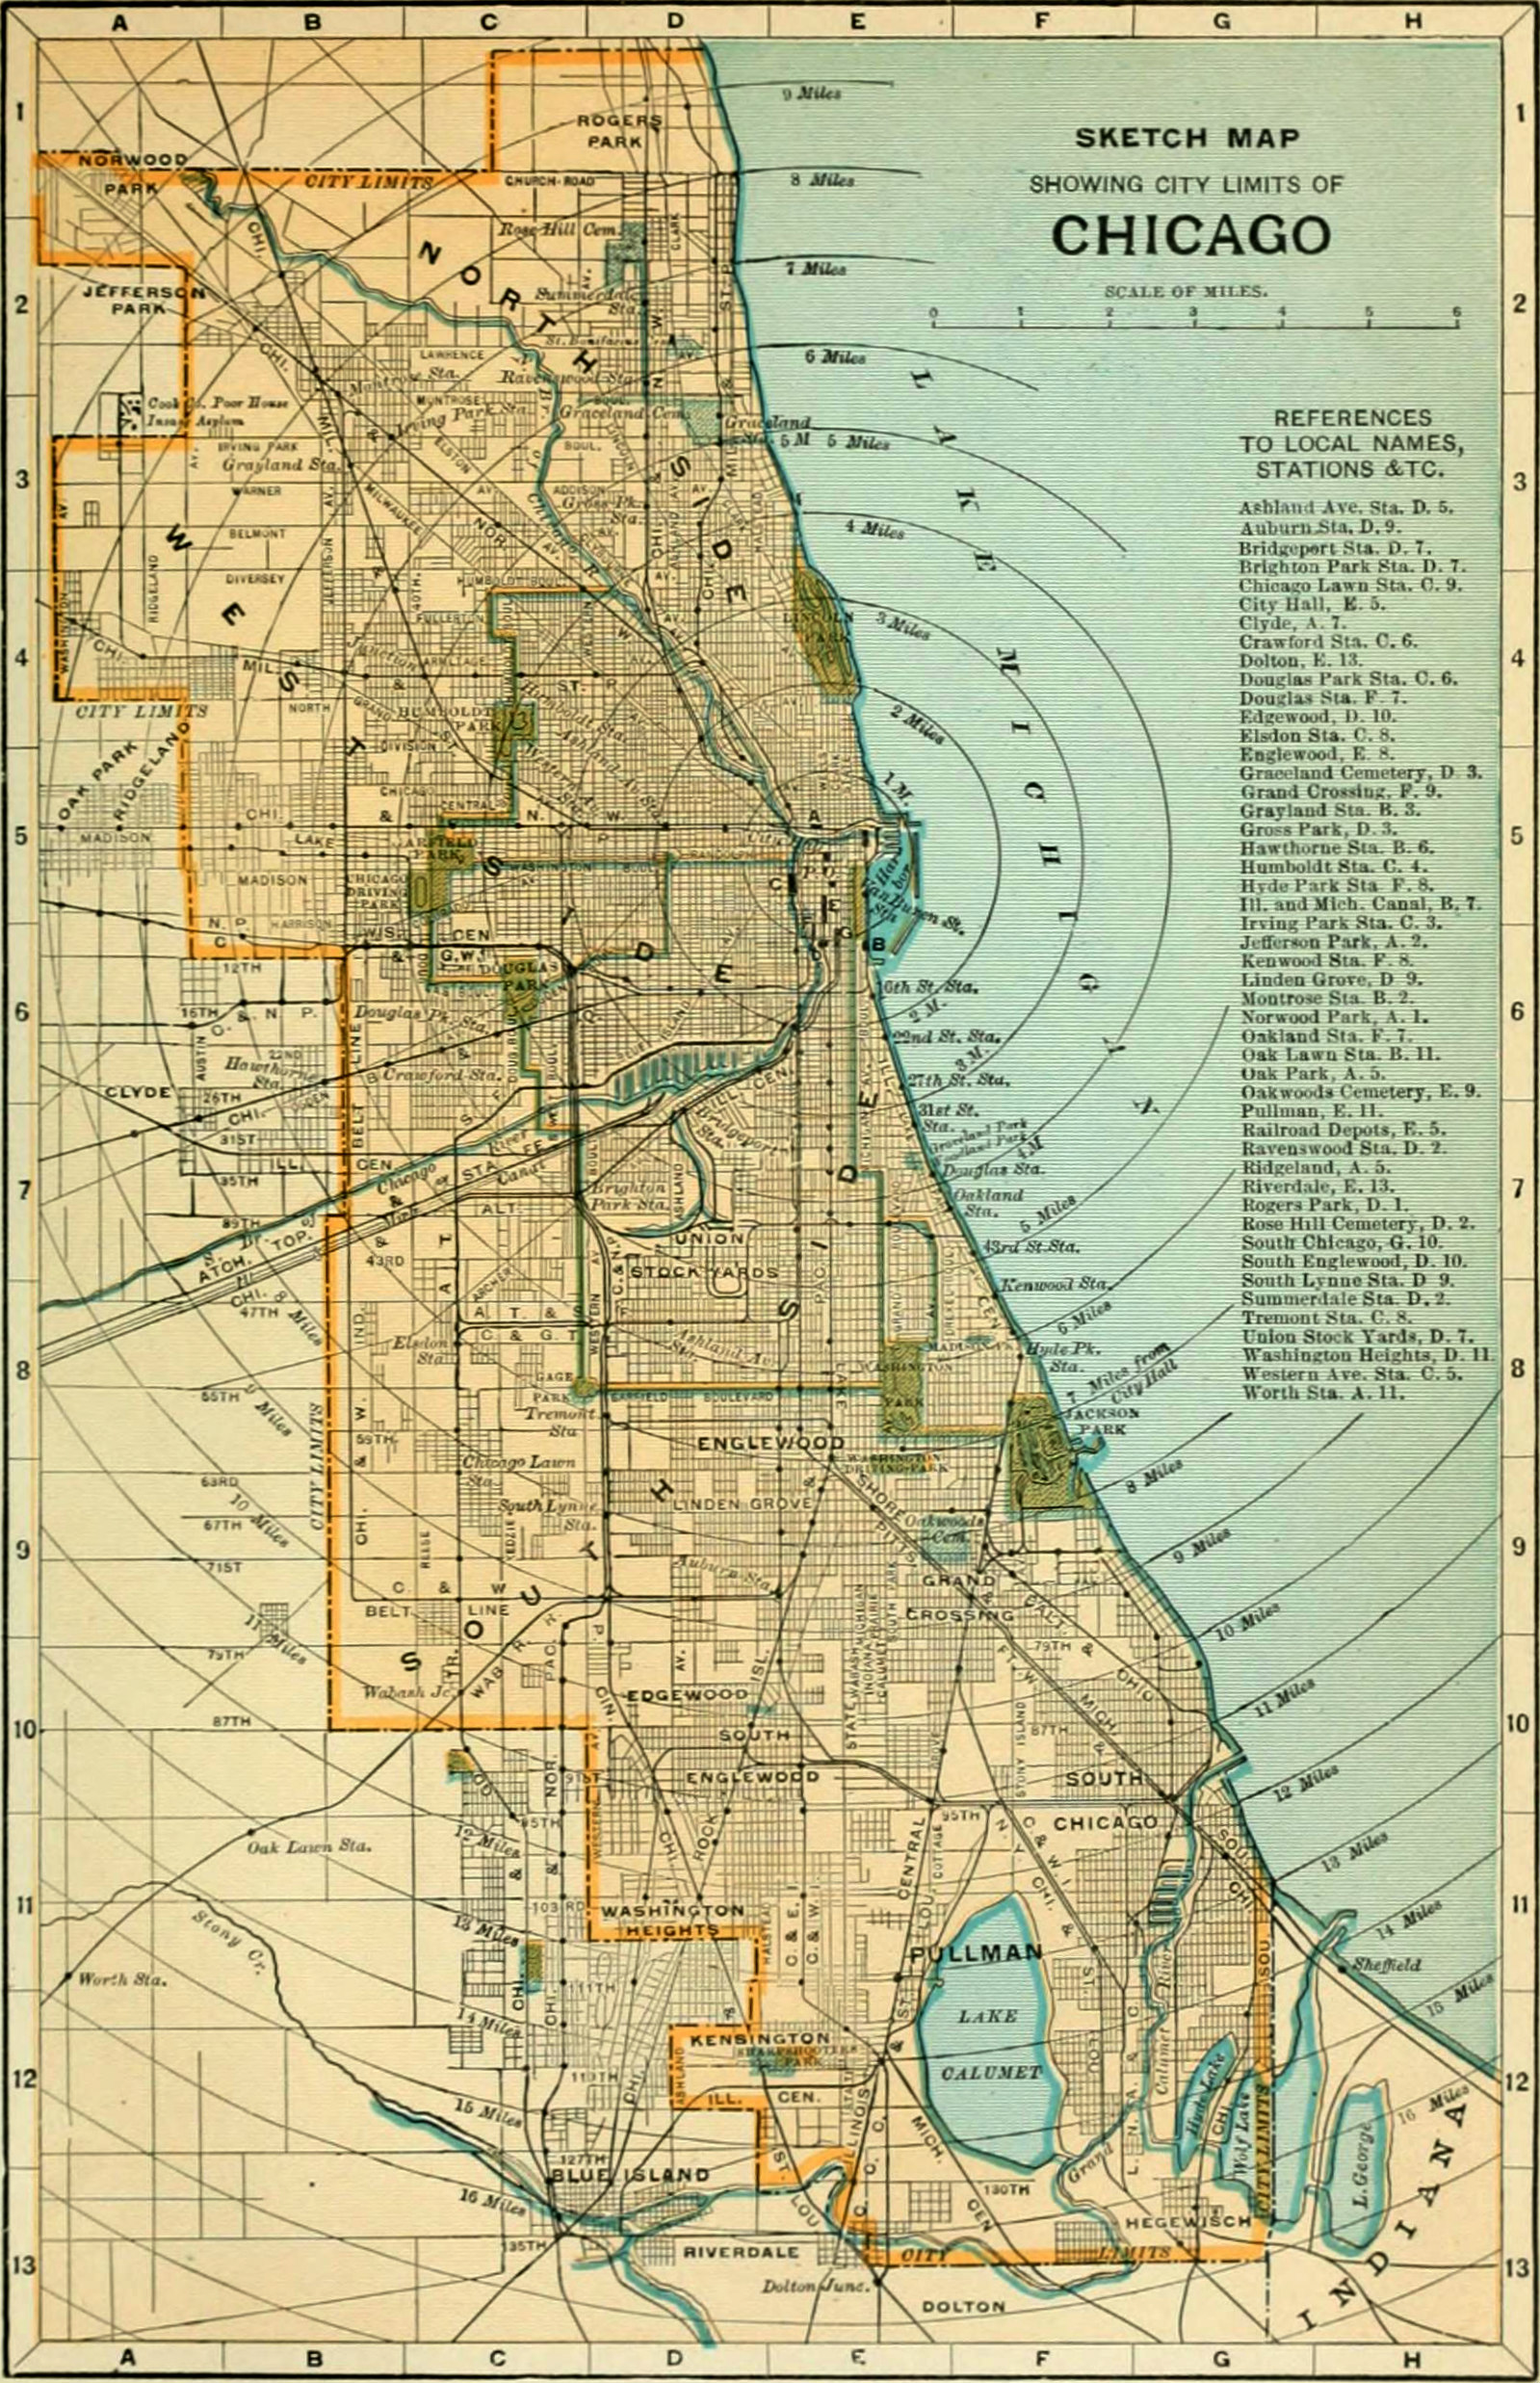 File:NIE 1905 Chicago - sketch map.jpg - Wikimedia Commons